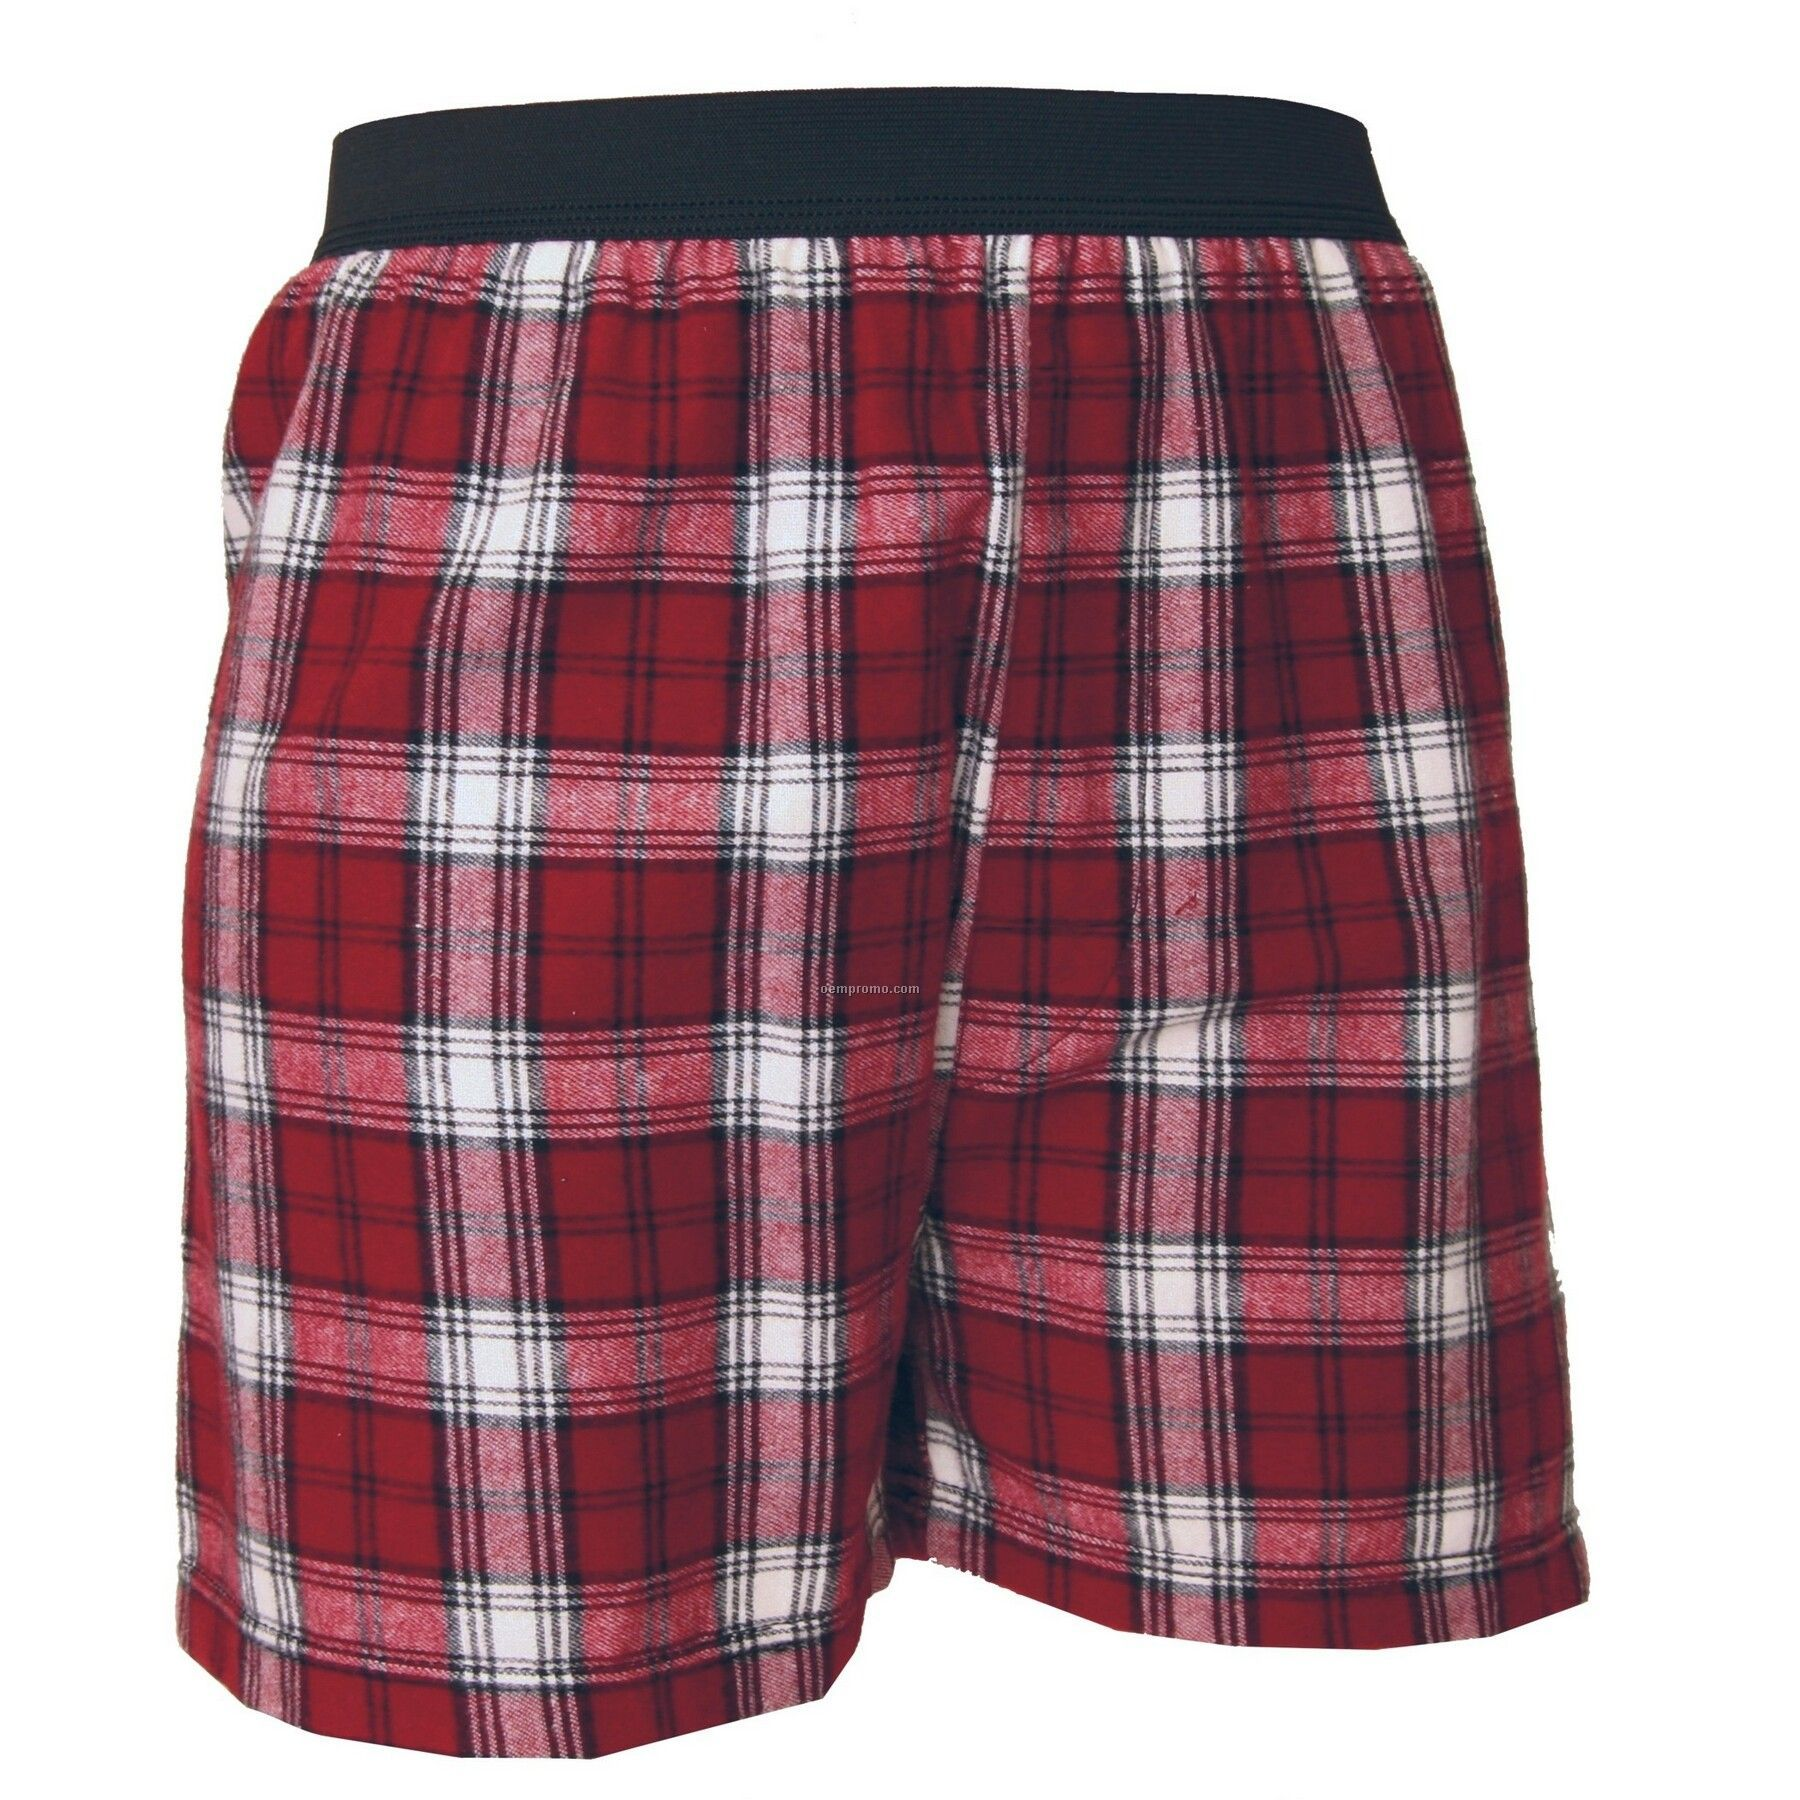 Youth Maroon Red/ White Plaid Classic Boxer Short